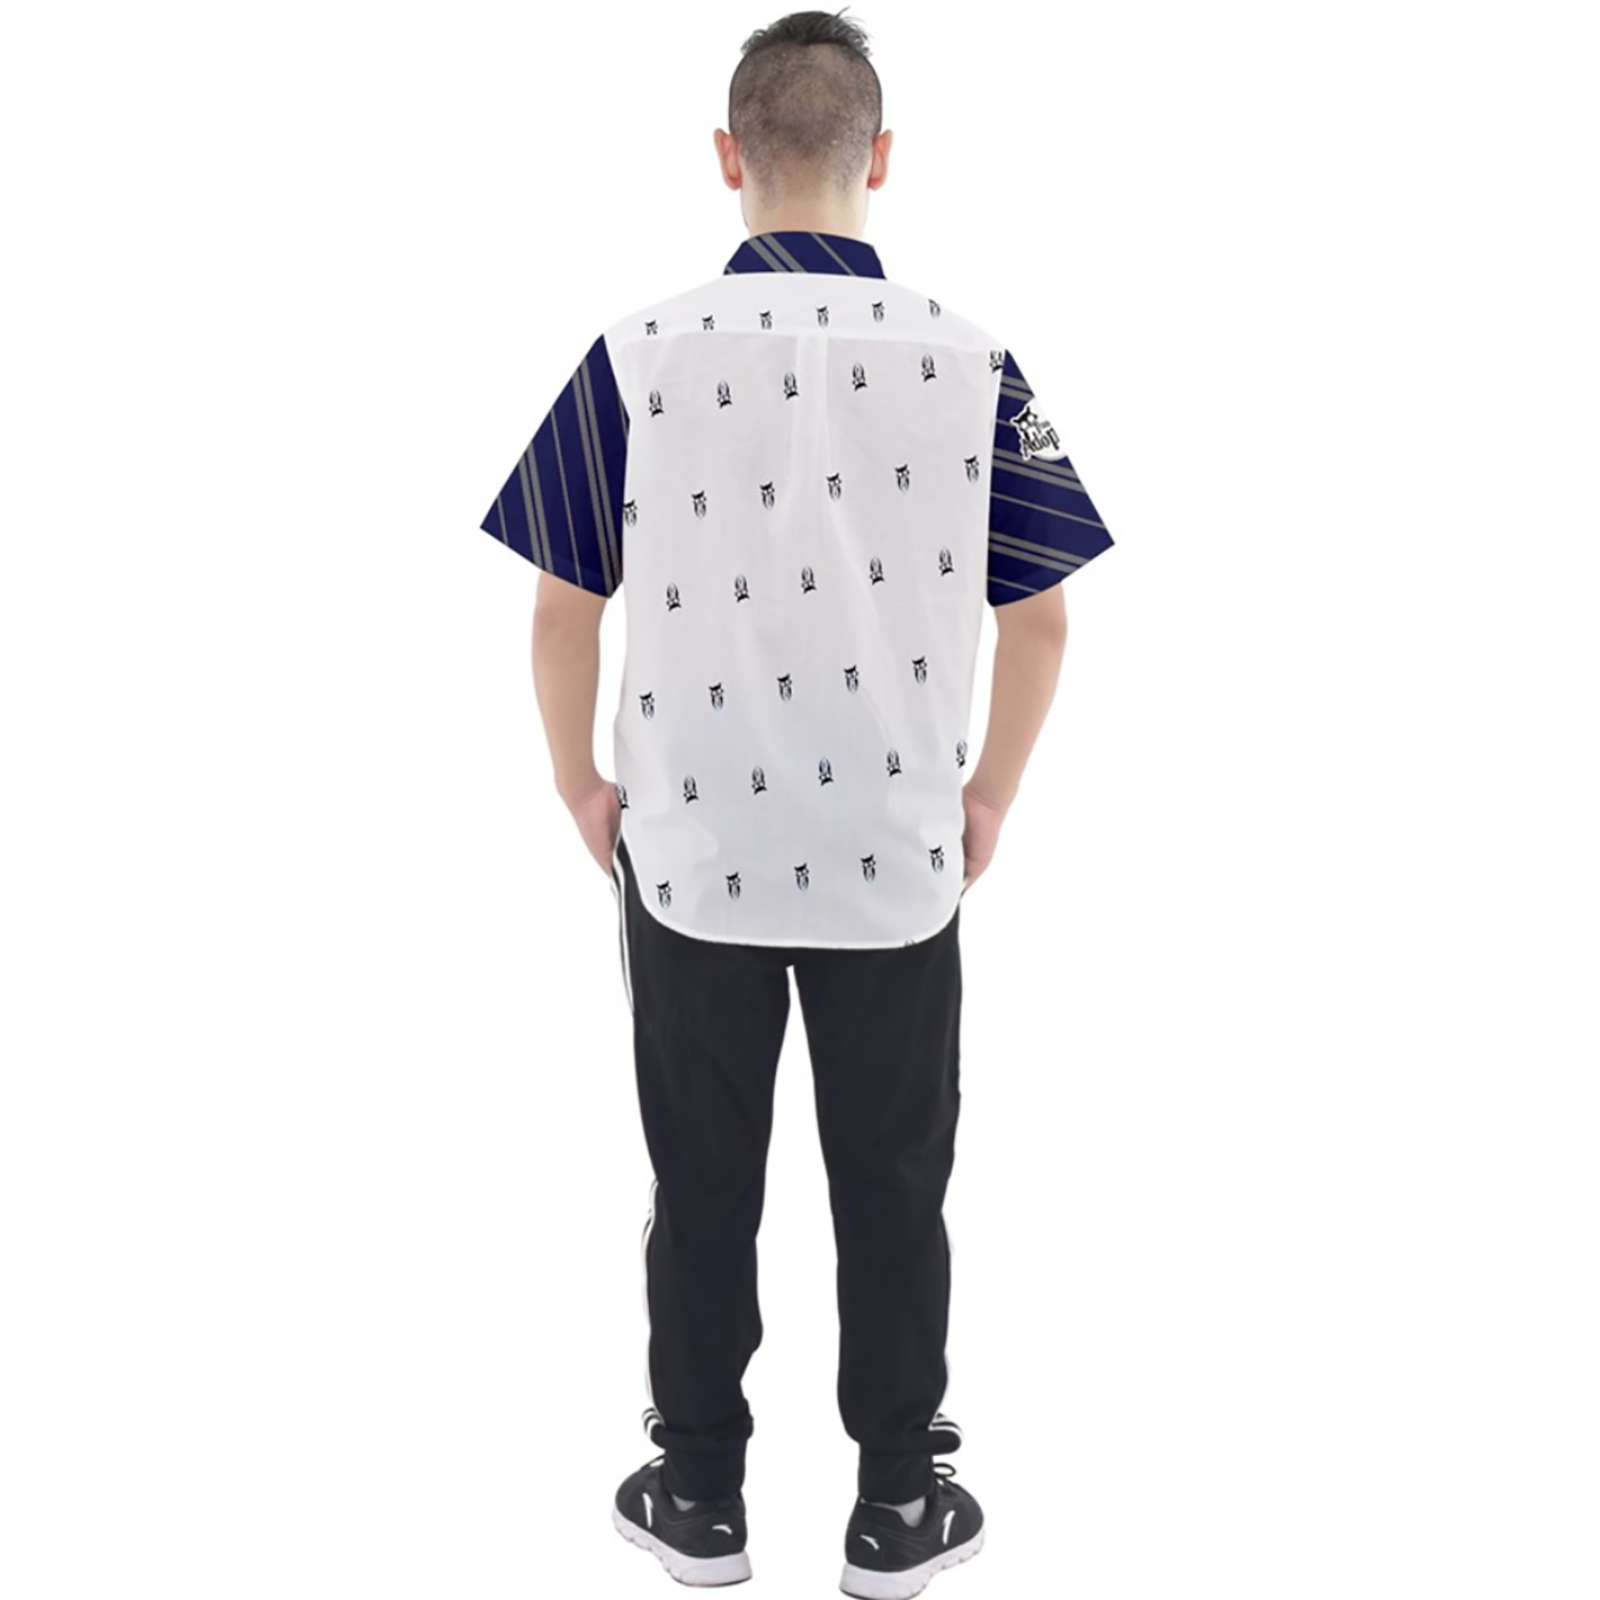 Blue & Gray Owl Patterned Button Up Short Sleeve Shirt - Inspired by Ravenclaw House